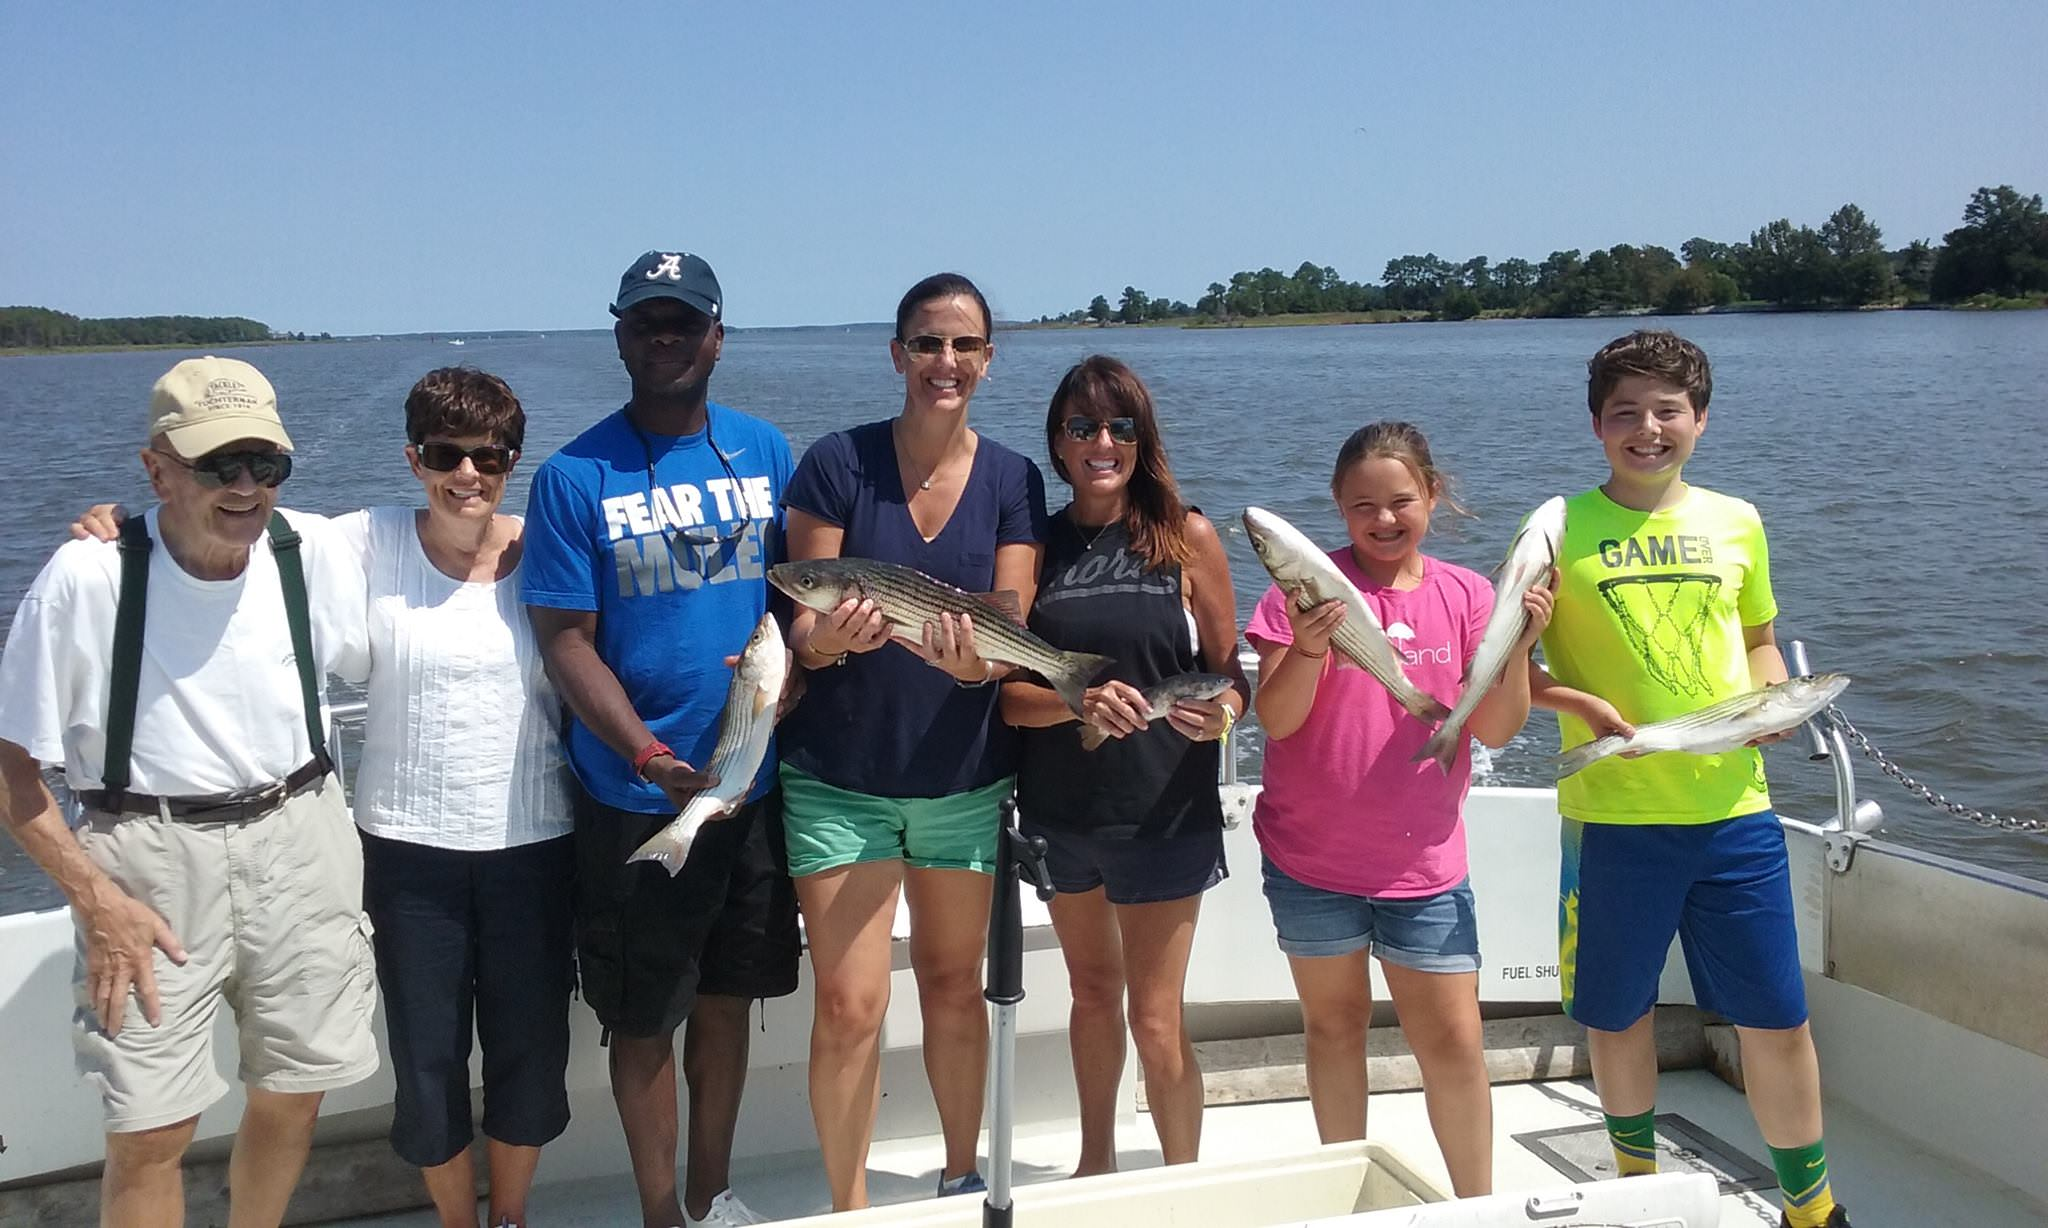 Another Happy Chesapeake Bay Fishing Charter!